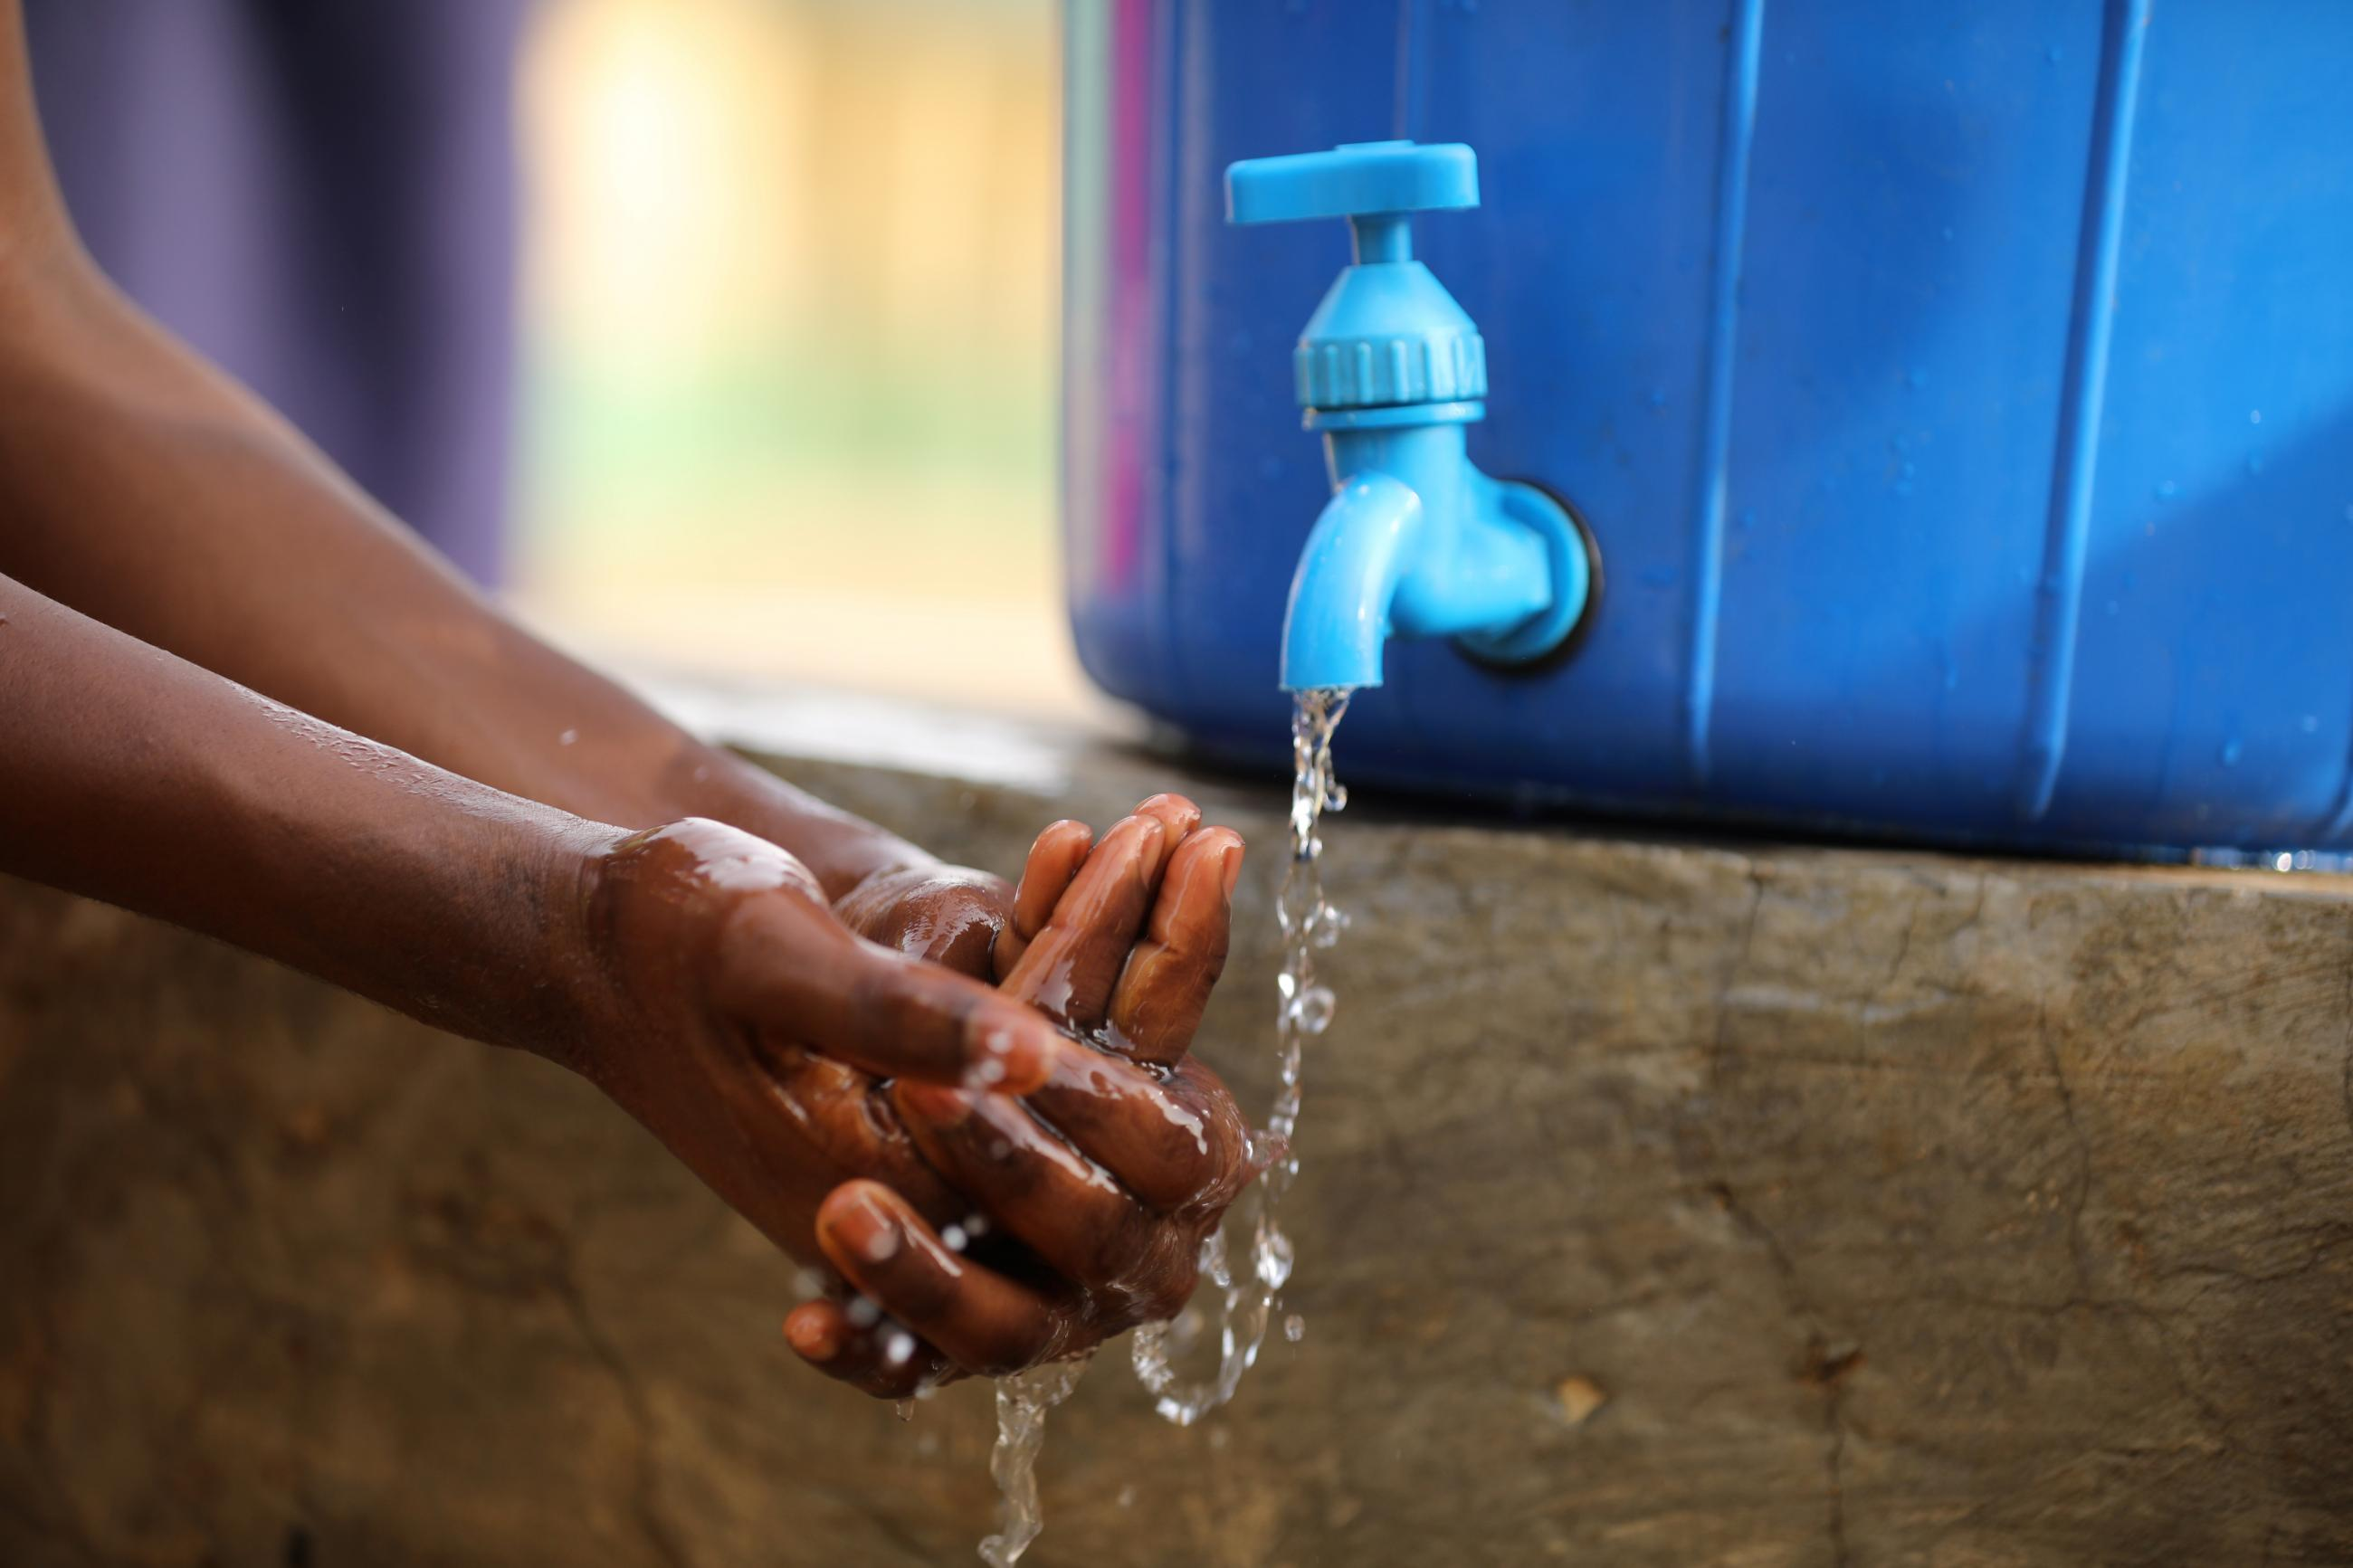 A student washes her hands at a school in Abuja, Nigeria, on March 20, 2020.